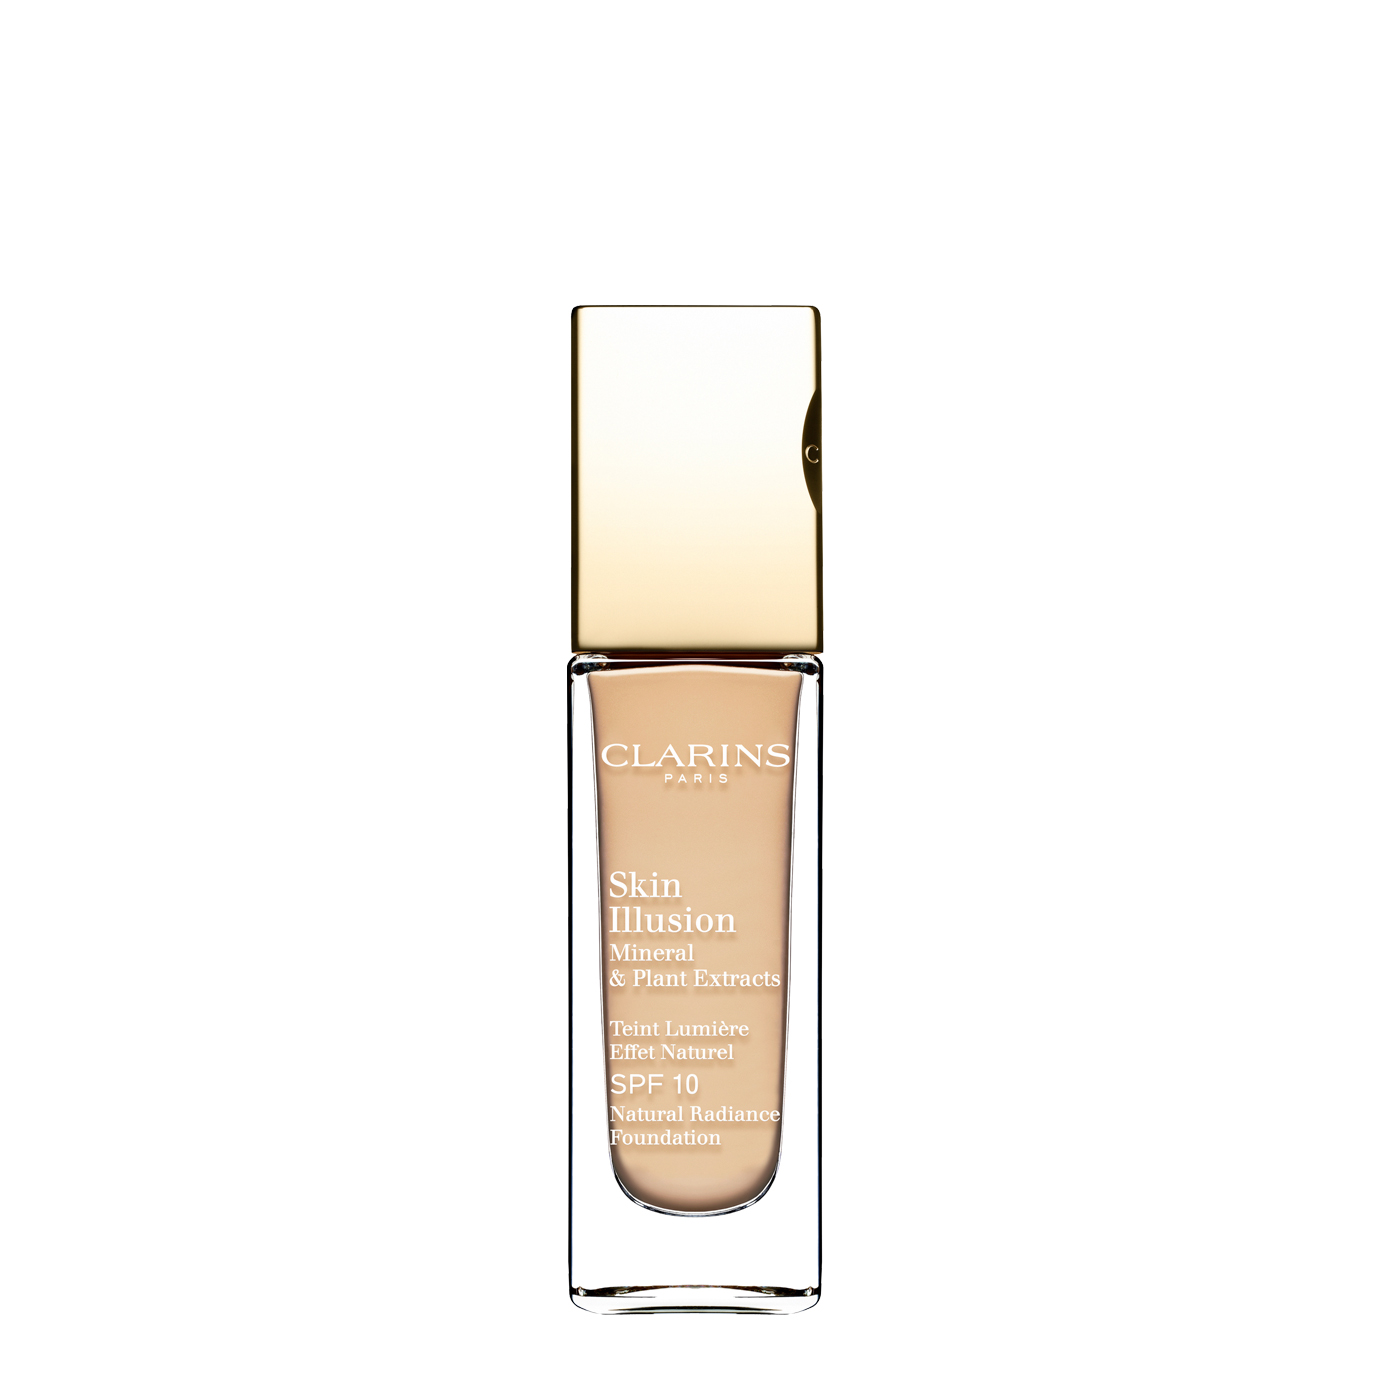 CLARINS SKIN ILLUSION FONDOTINTA IDRATANTE 30 ML  110 HONEY